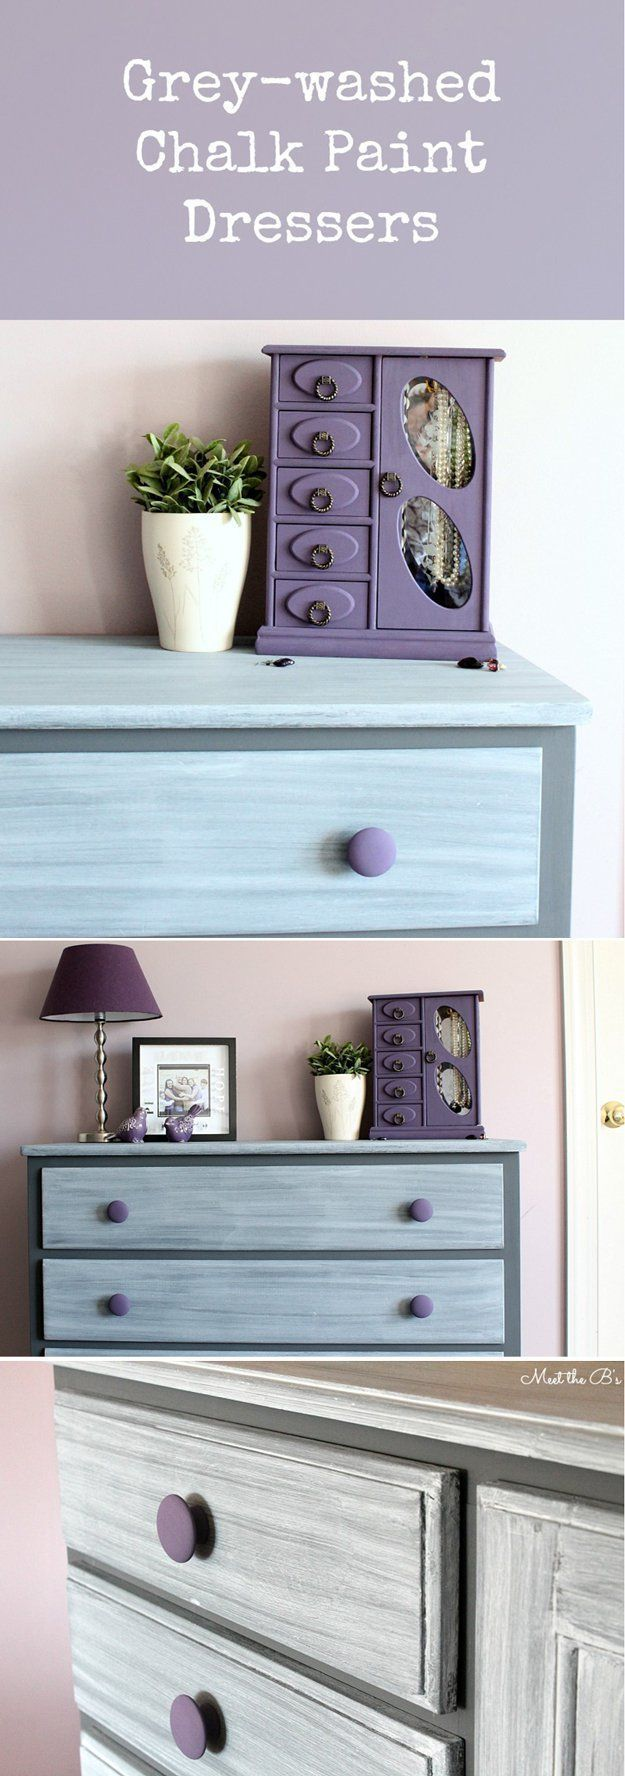 DIY Before and After Dresser Chalk Paint Makeover | Home Improvement Ideas by DIY Ready at http://diyready.com/16-more-diy-chalk-paint-furniture-ideas/